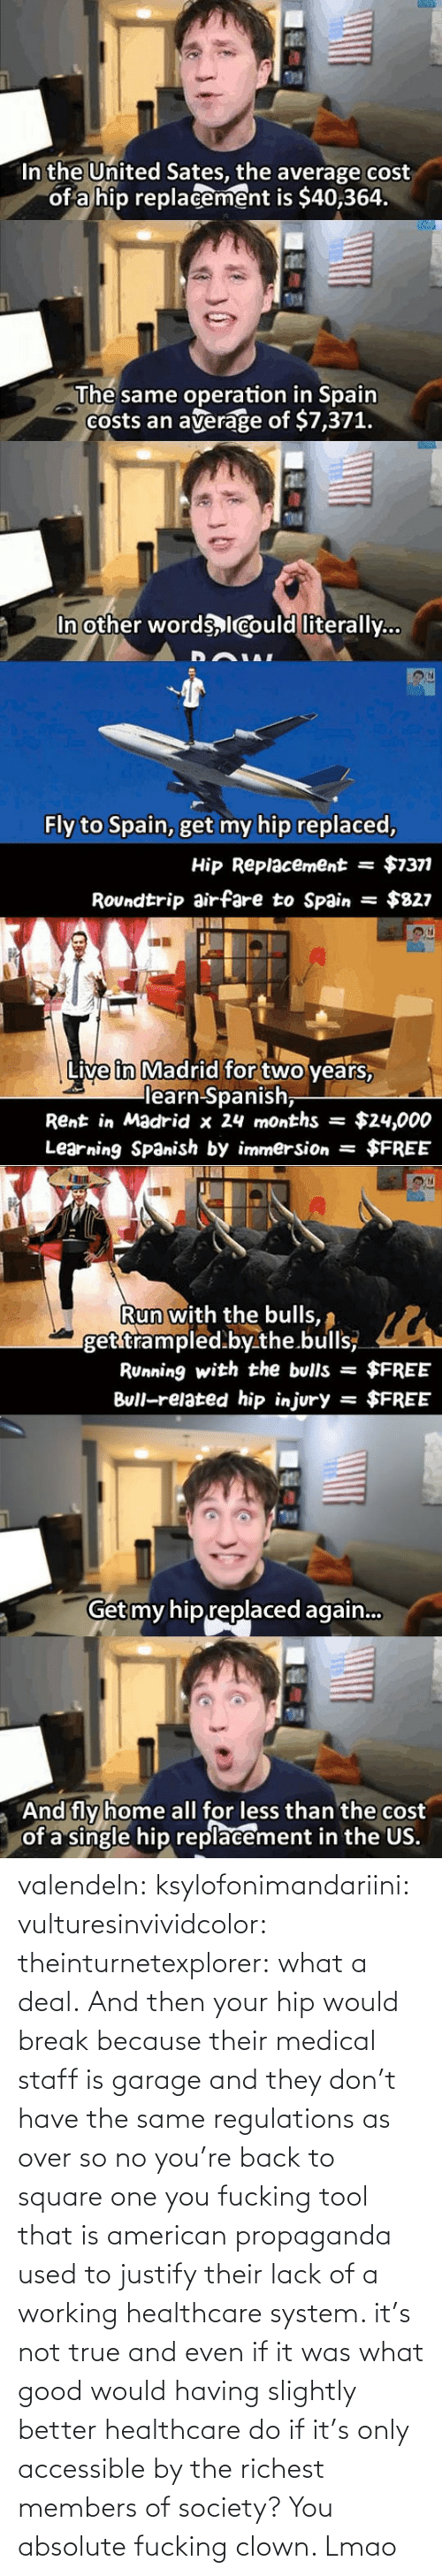 and then: valendeln:  ksylofonimandariini:  vulturesinvividcolor:   theinturnetexplorer:  what a deal.   And then your hip would break because their medical staff is garage and they don't have the same regulations as over so no you're back to square one you fucking tool    that is american propaganda used to justify their lack of a working healthcare system. it's not true and even if it was what good would having slightly better healthcare do if it's only accessible by the richest members of society?      You absolute fucking clown. Lmao